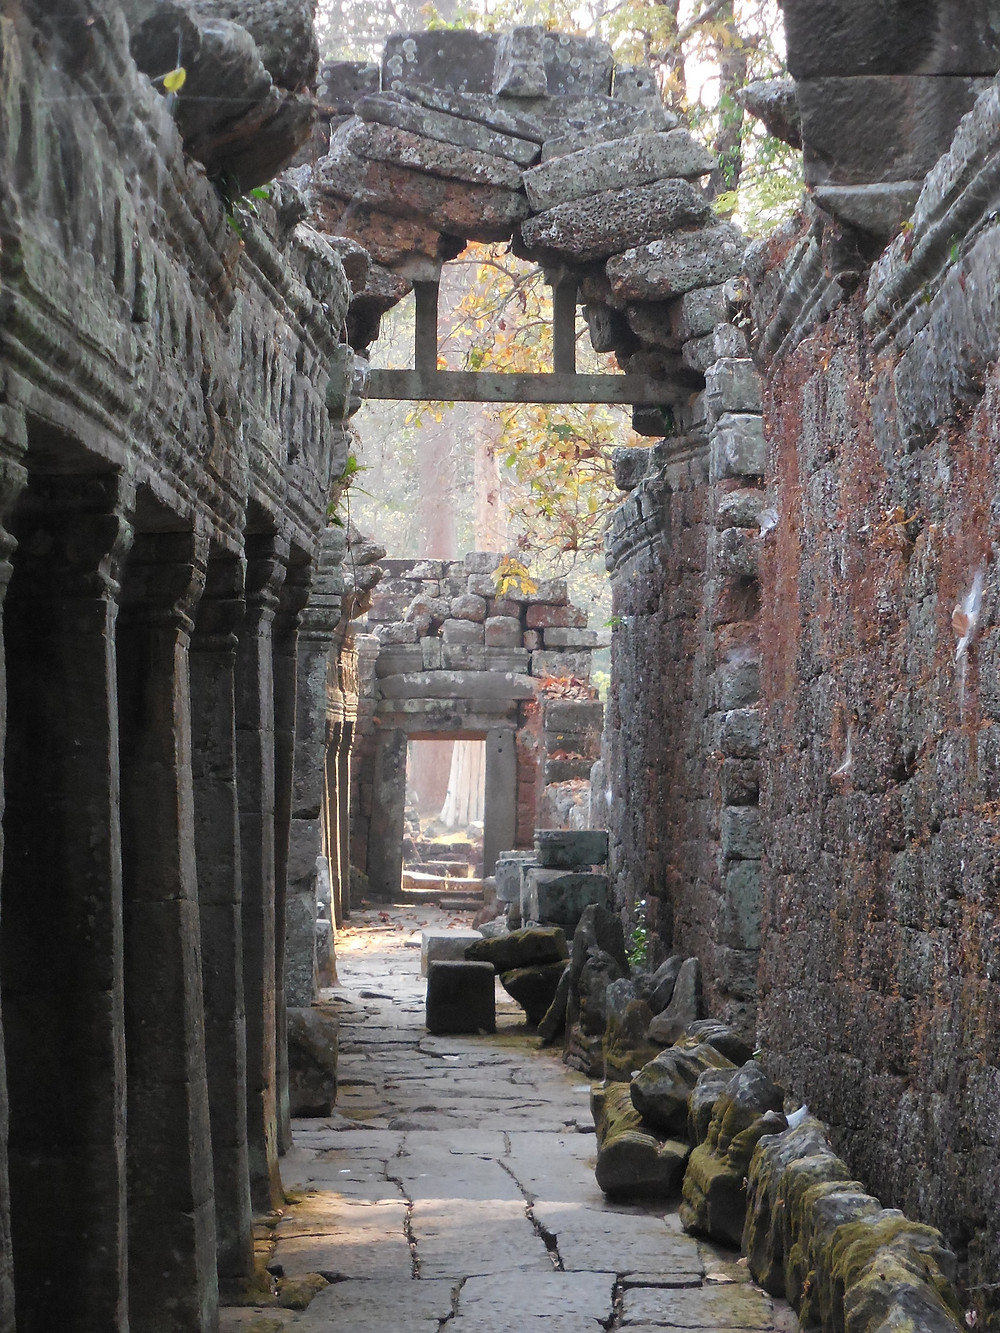 The early morning sun makes for some great photo ops at Banteay Kdei